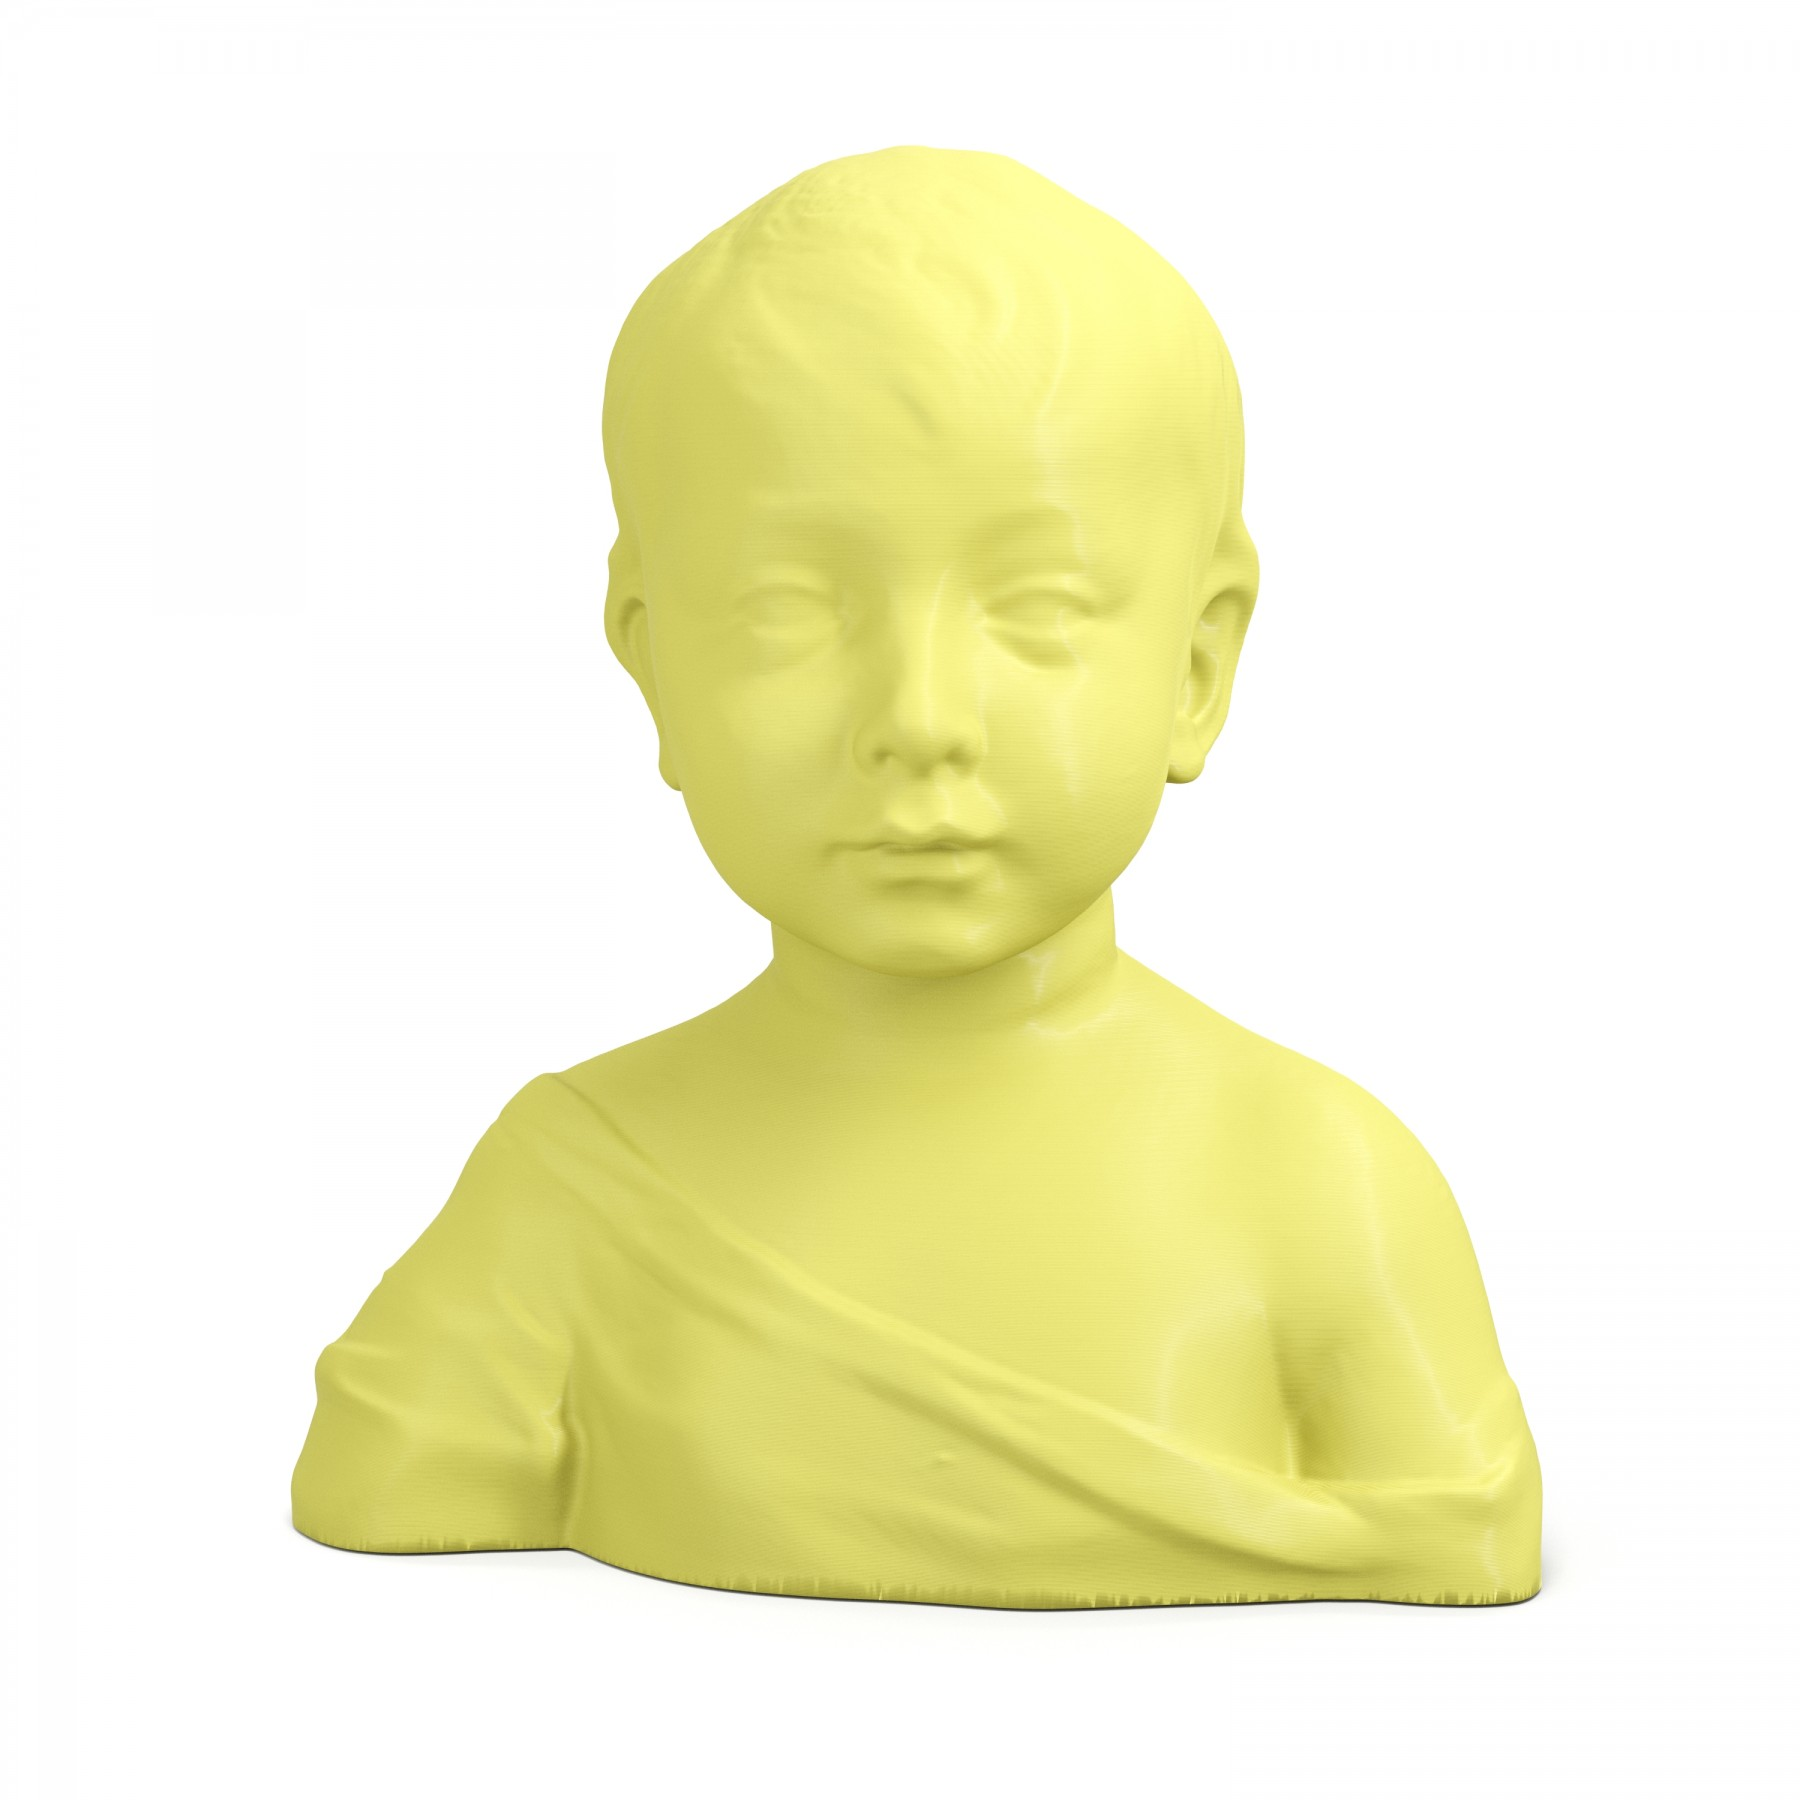 3D Printed Bust of a Child Busts Art Clone Statue - ARTFICIAL.COM